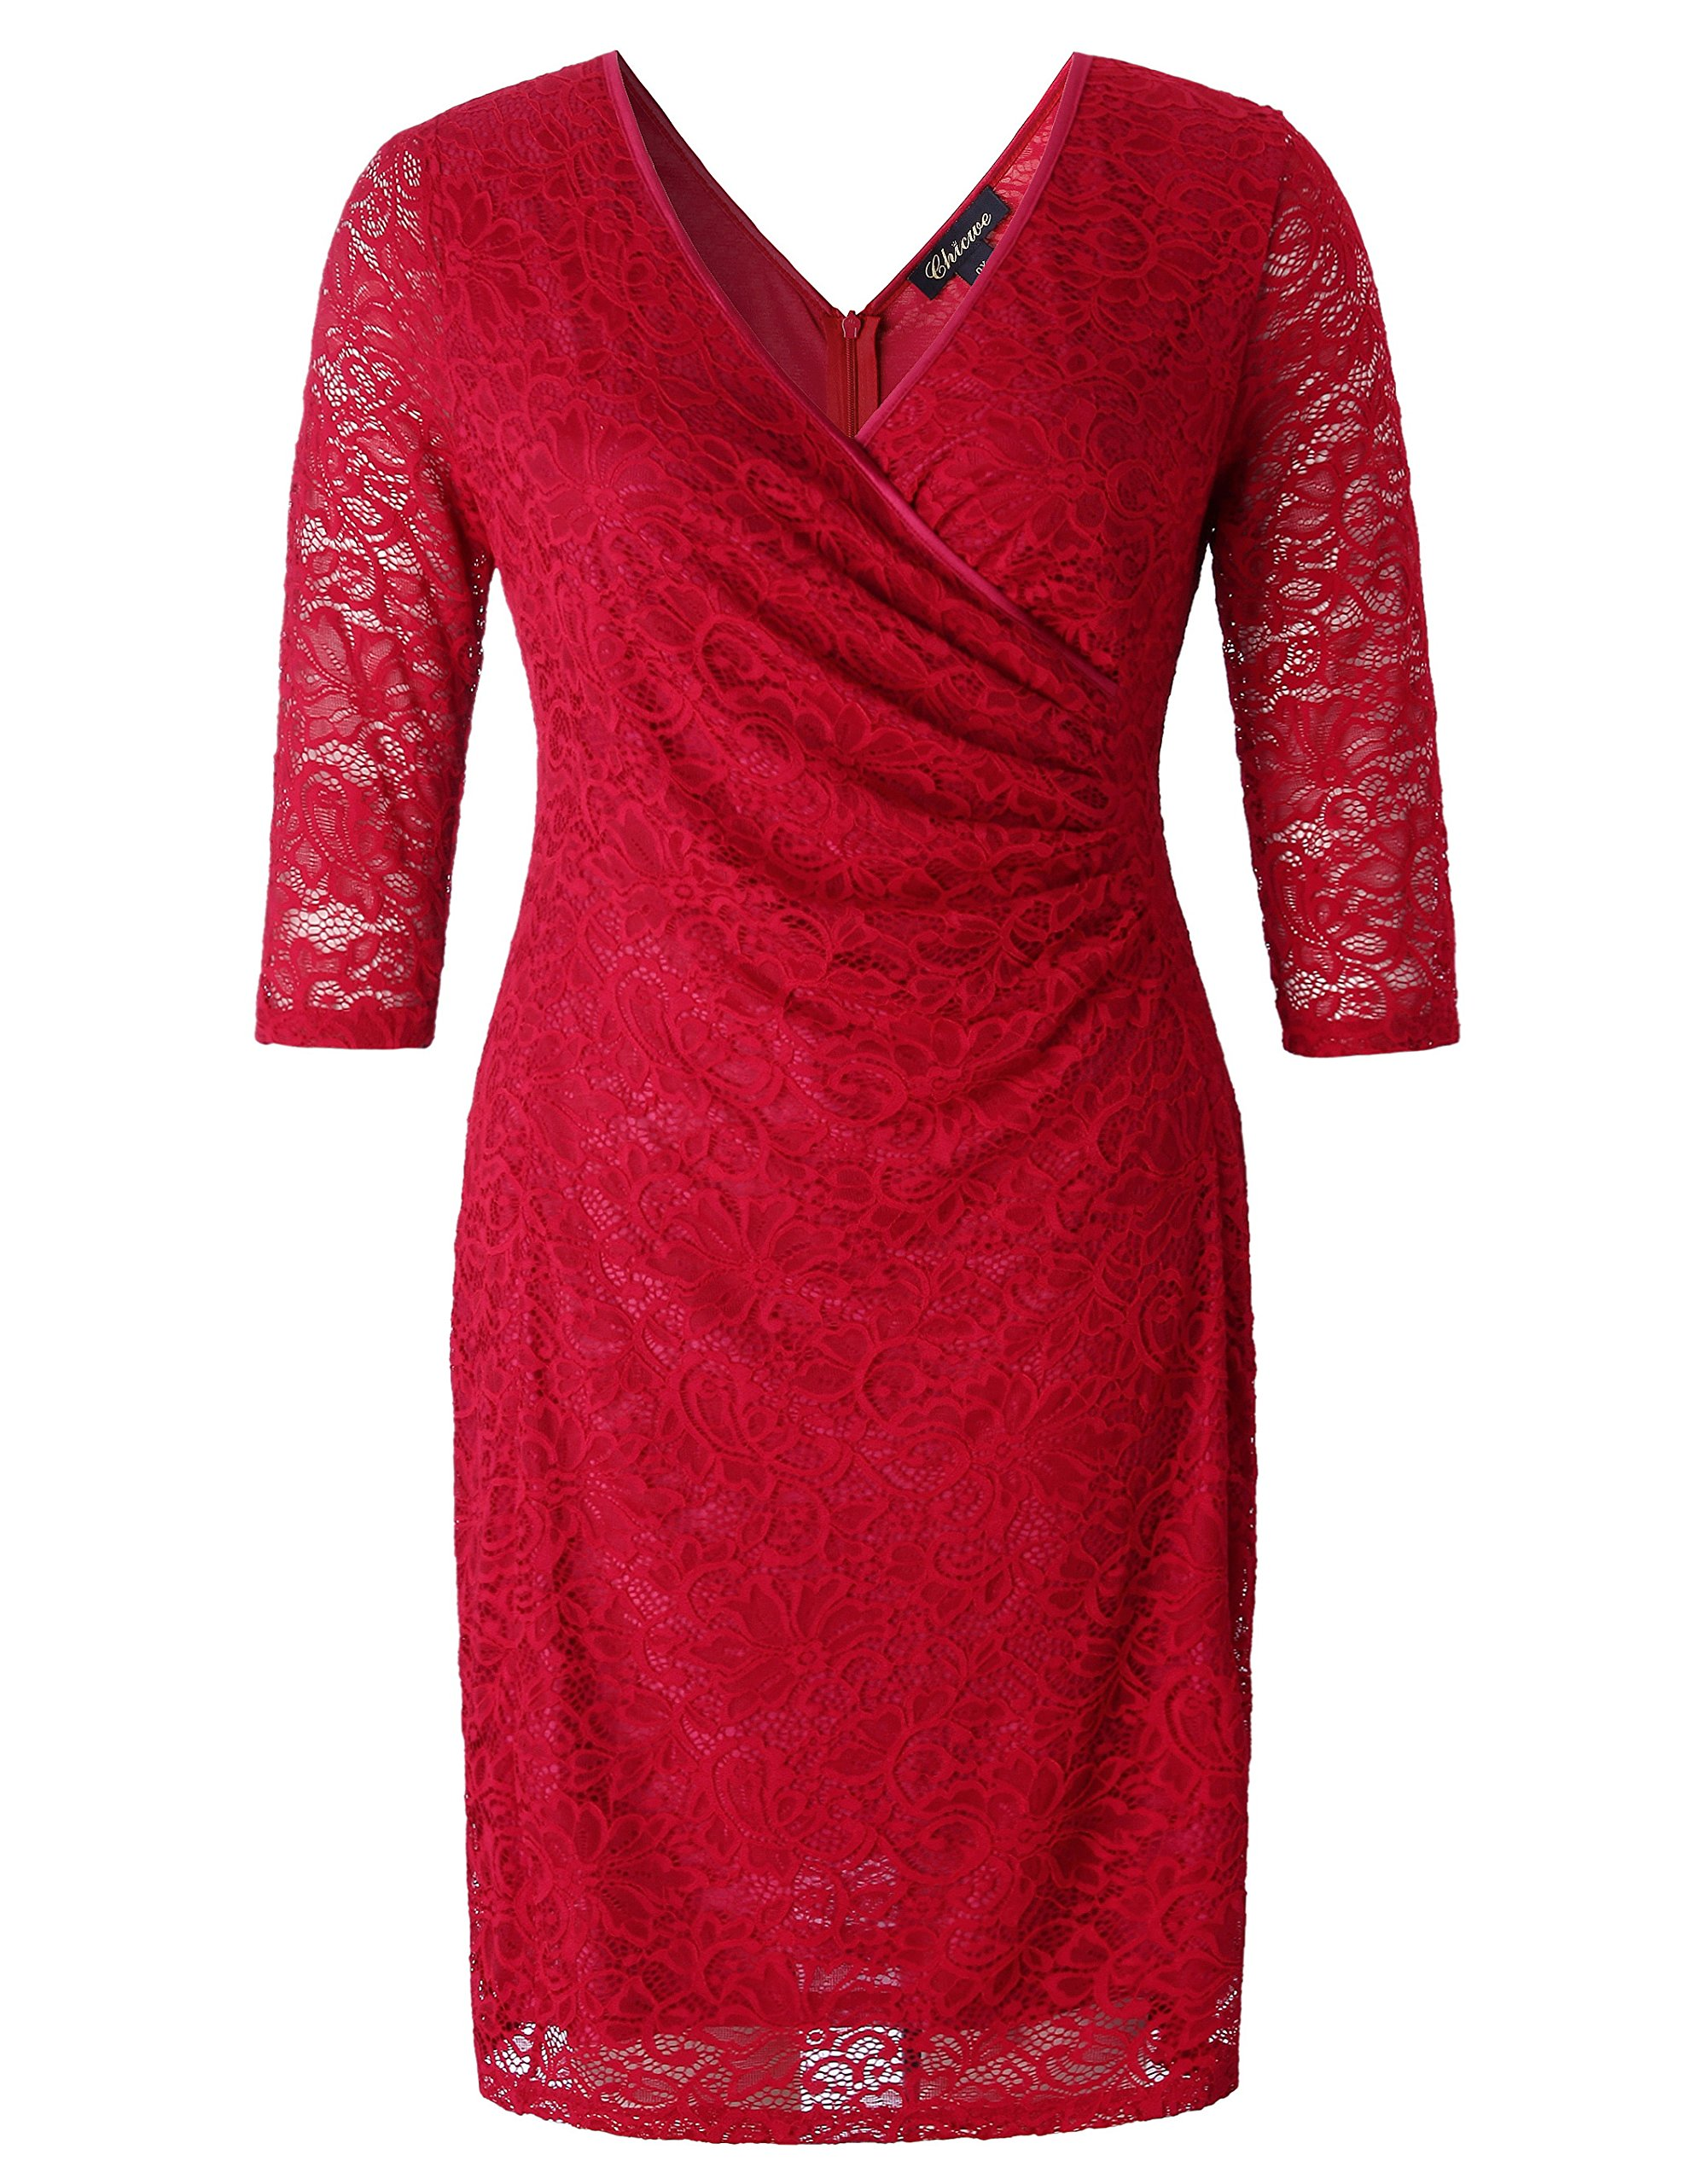 Chicwe Women's Plus Size Stretch Floral Lace Wrap Dress with Ruched Detailing - Knee Length Casual Party Cocktail Dress 1X